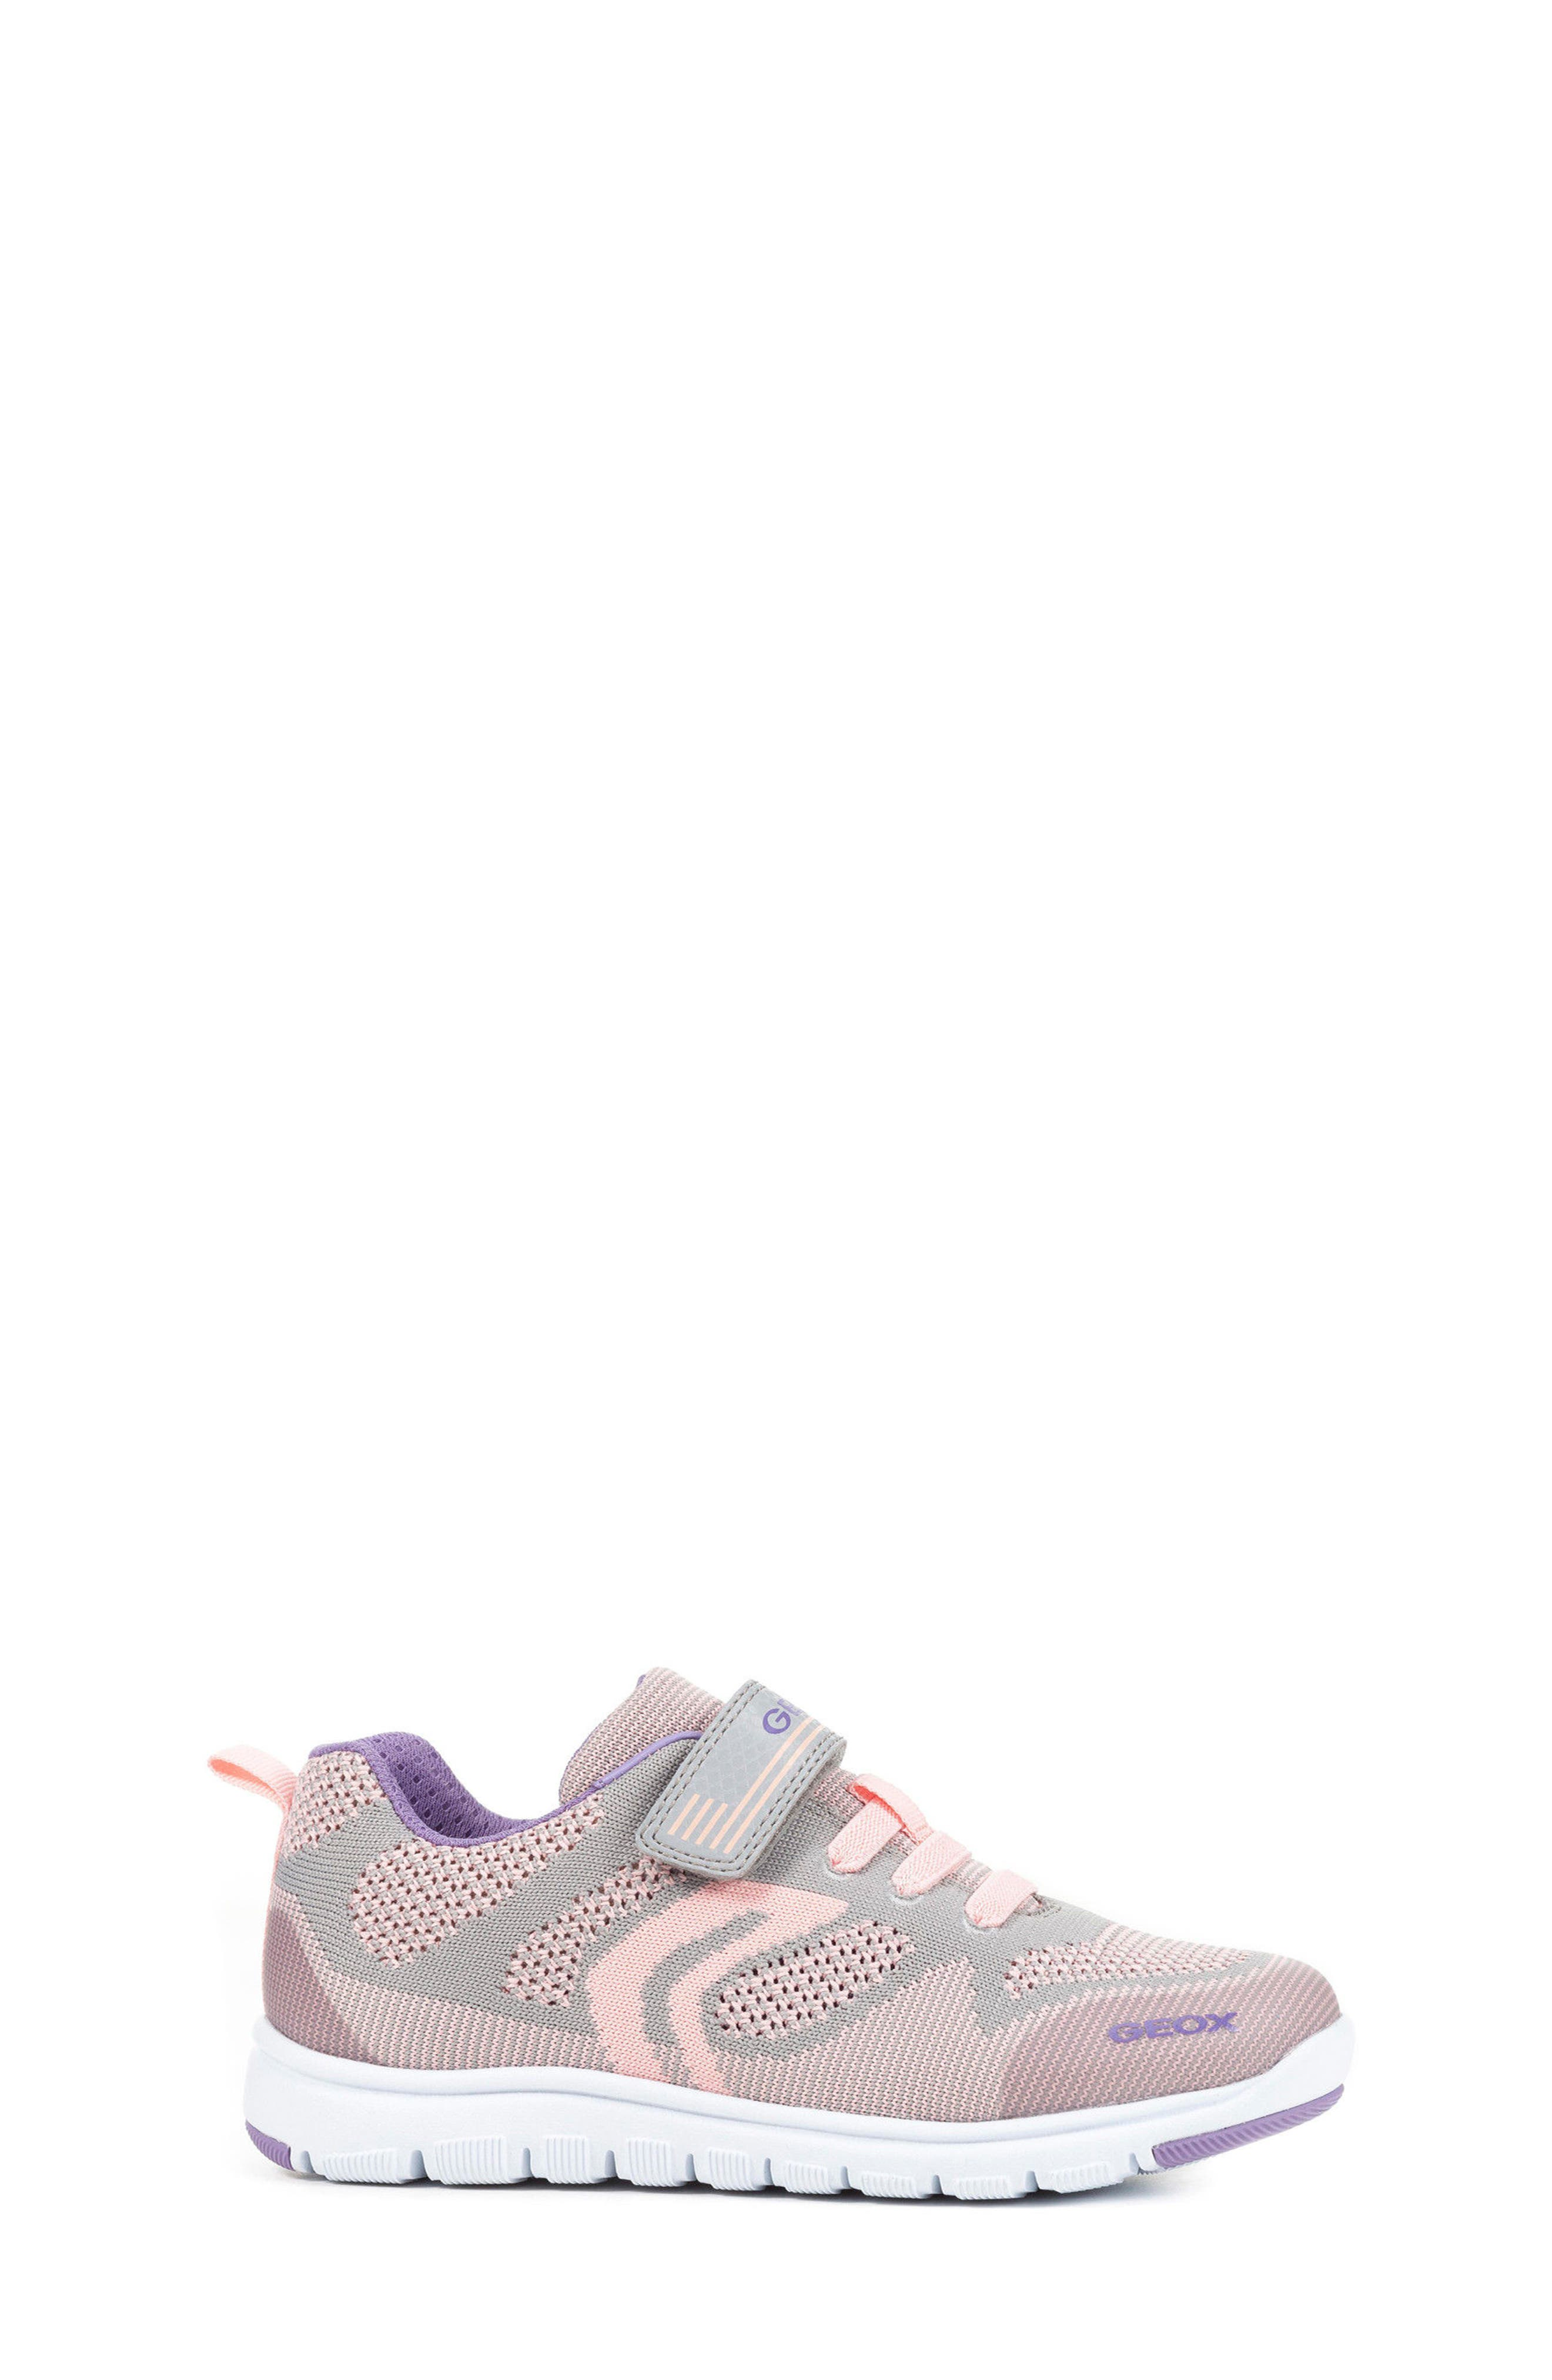 Xunday Low Top Woven Sneaker,                             Alternate thumbnail 3, color,                             066